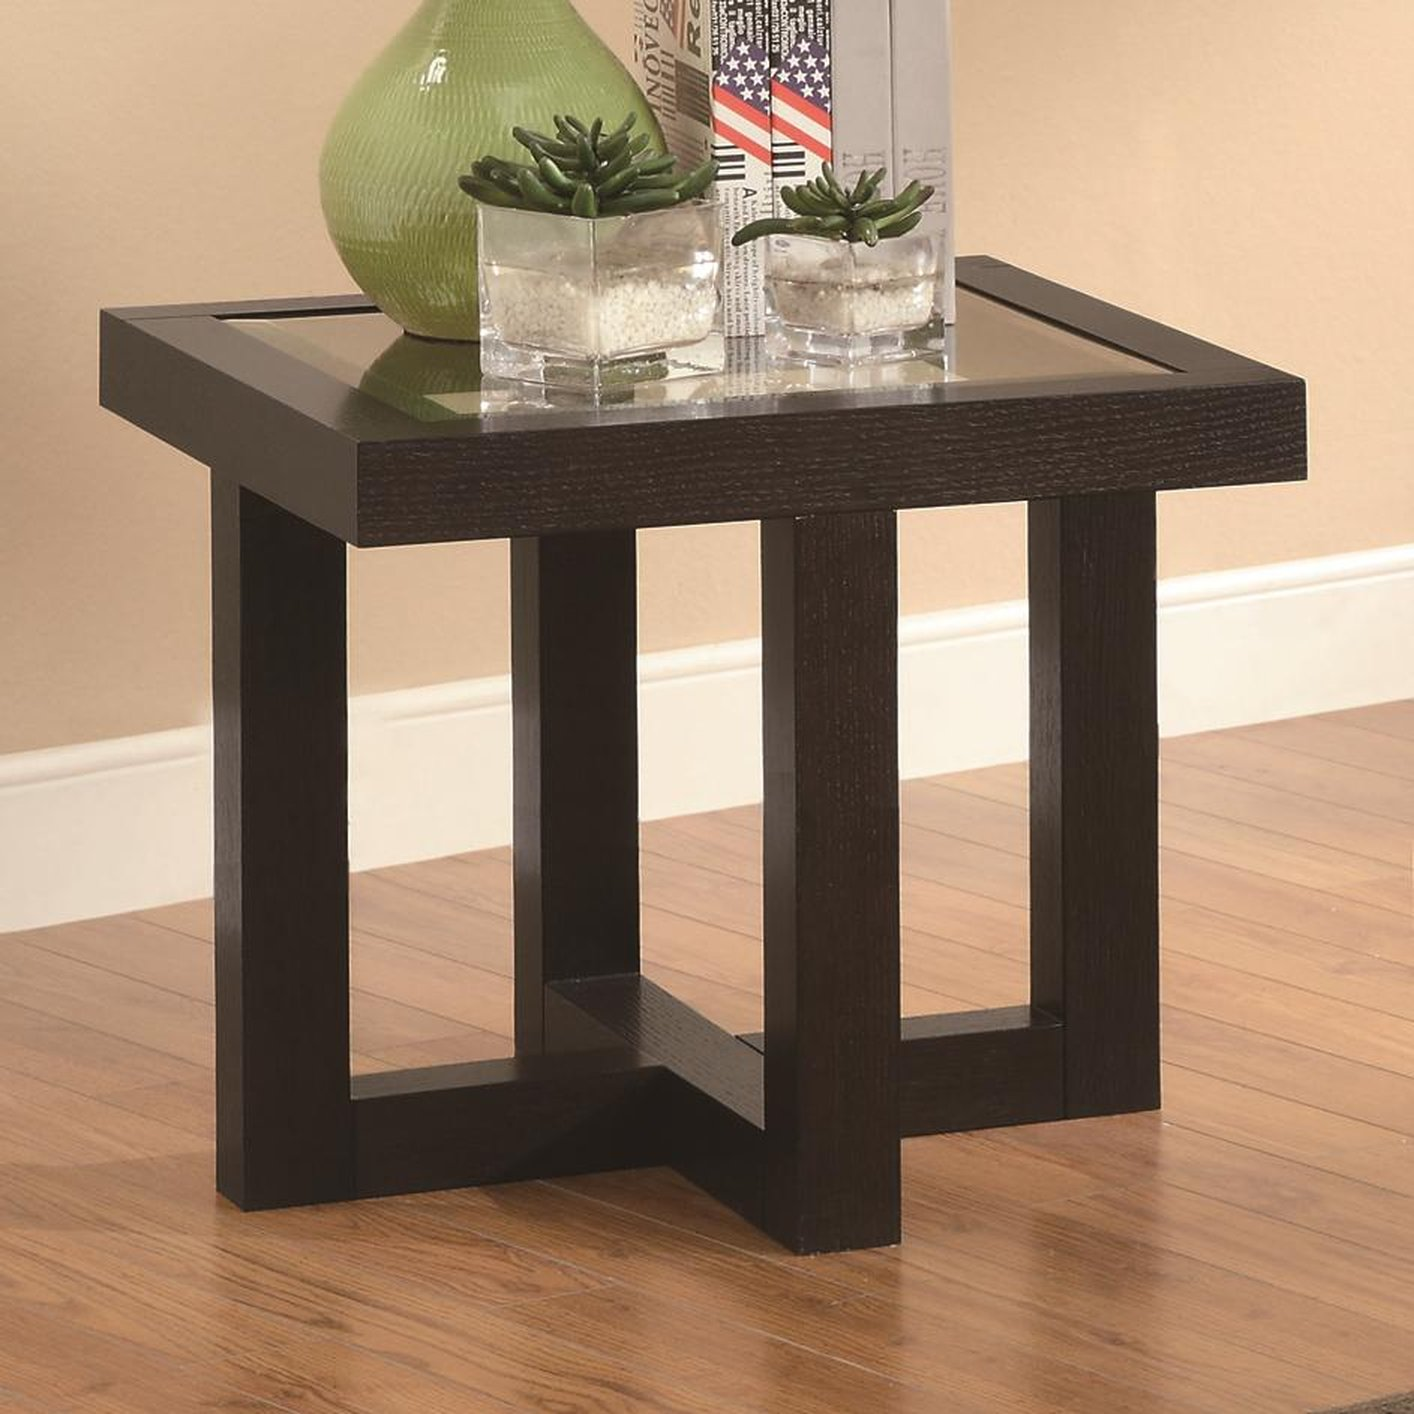 Coaster 701767 Black Glass End Table